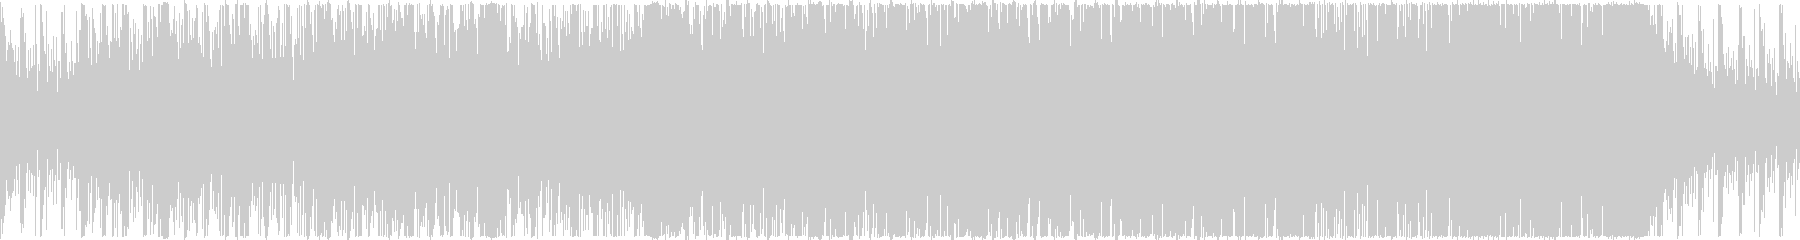 Fantastic field / Japanese style / Game / M6's unreproduced waveform